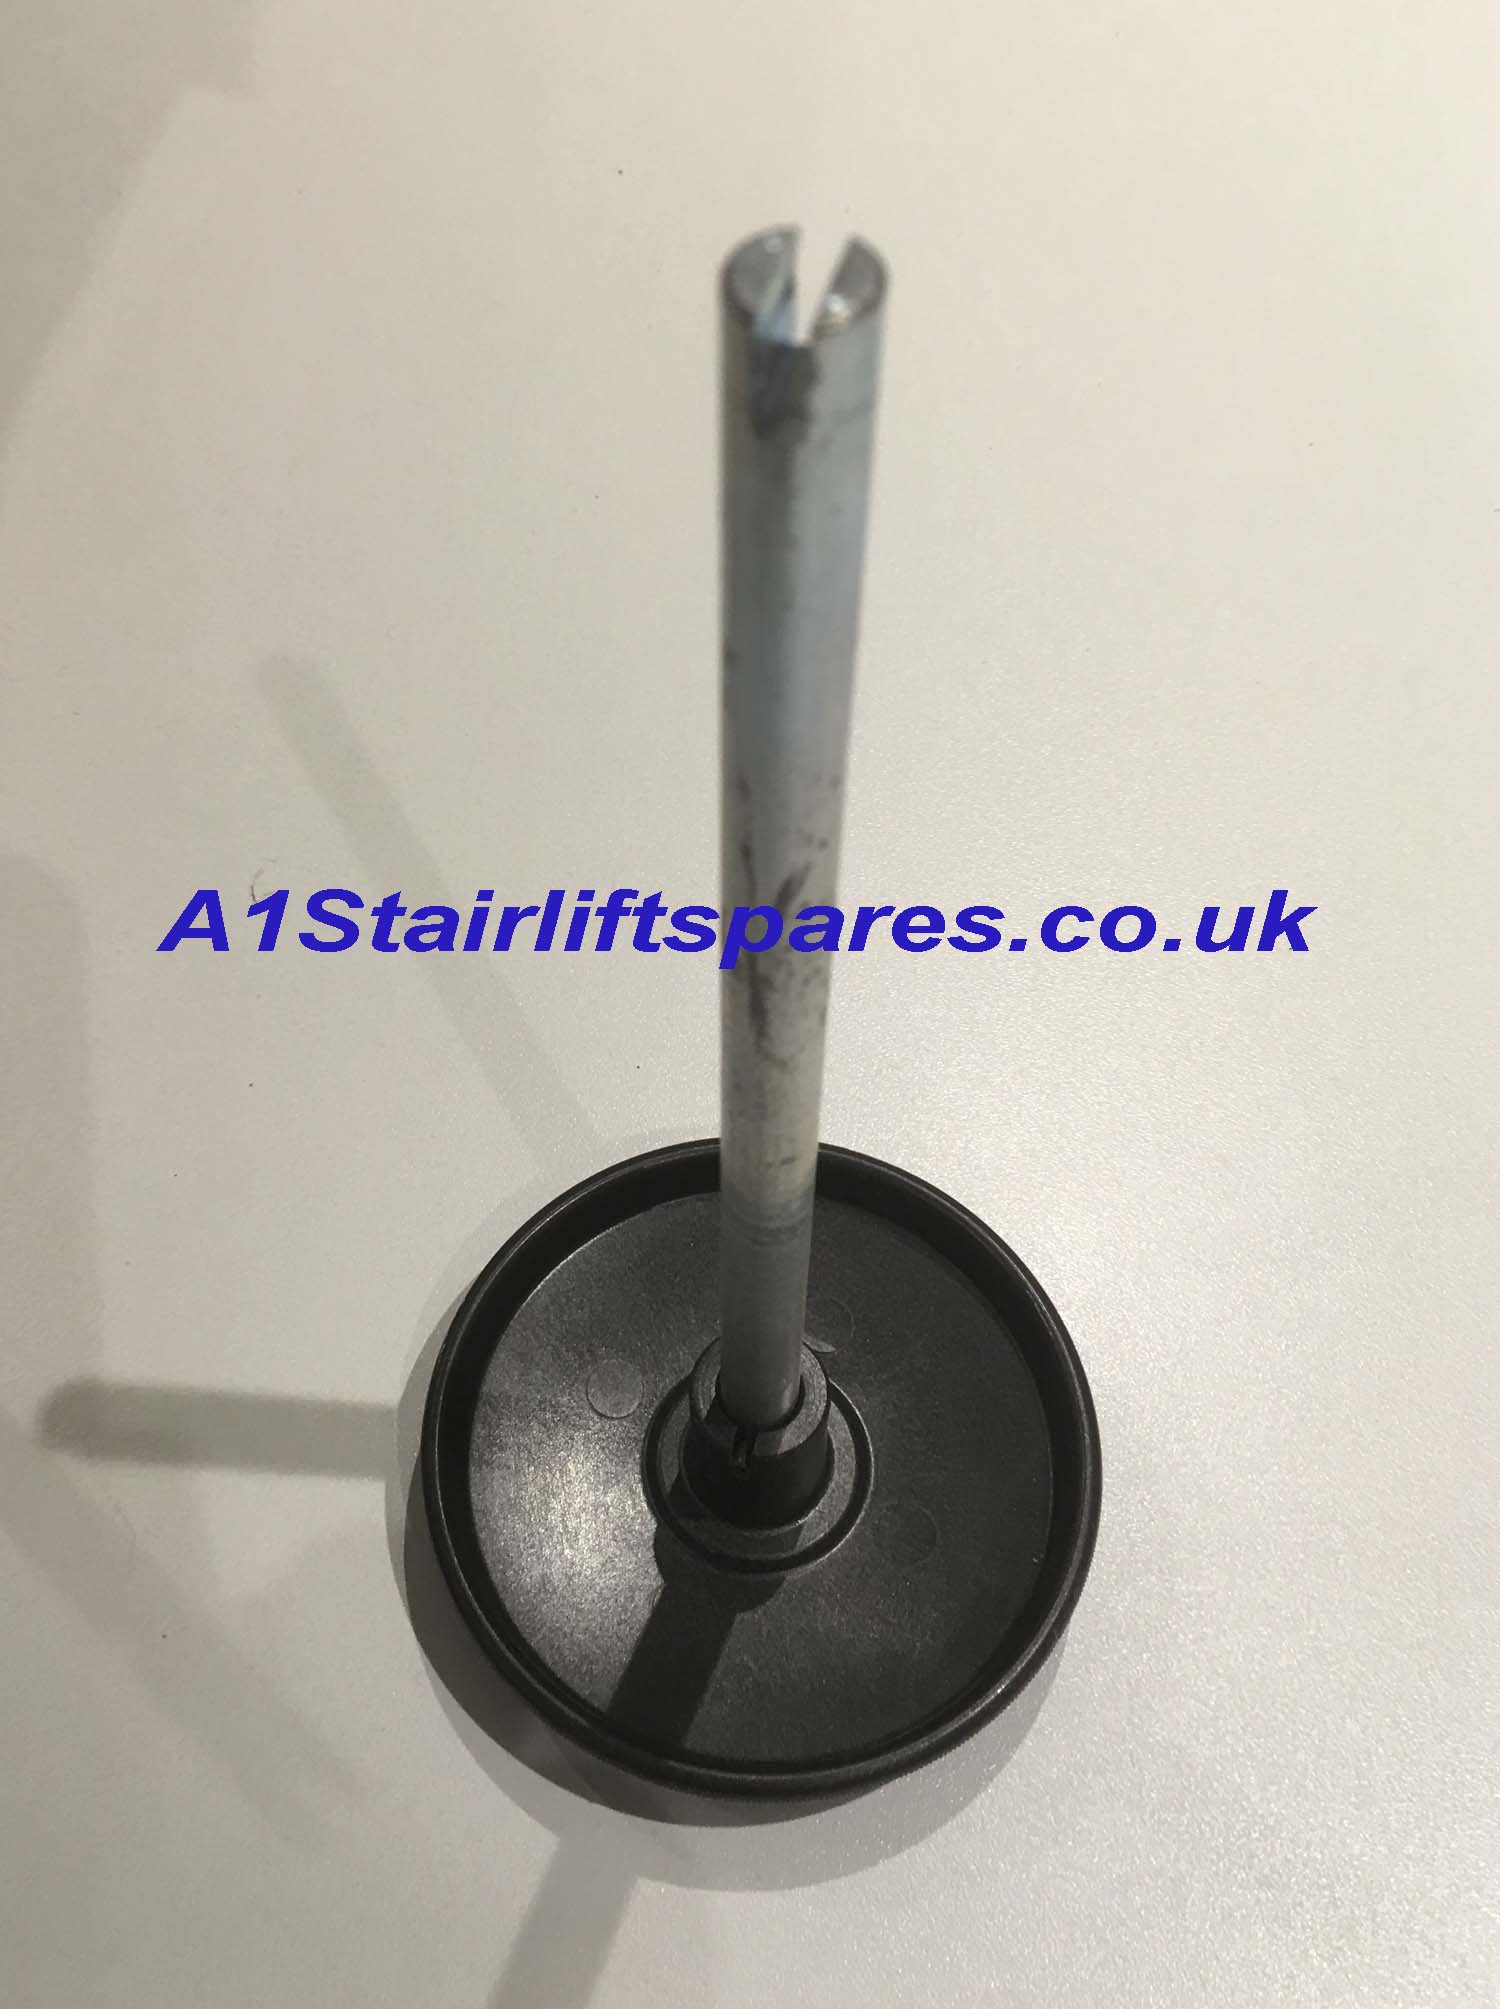 Stannah 250 Winding Handle - A1 Stairlift Spares